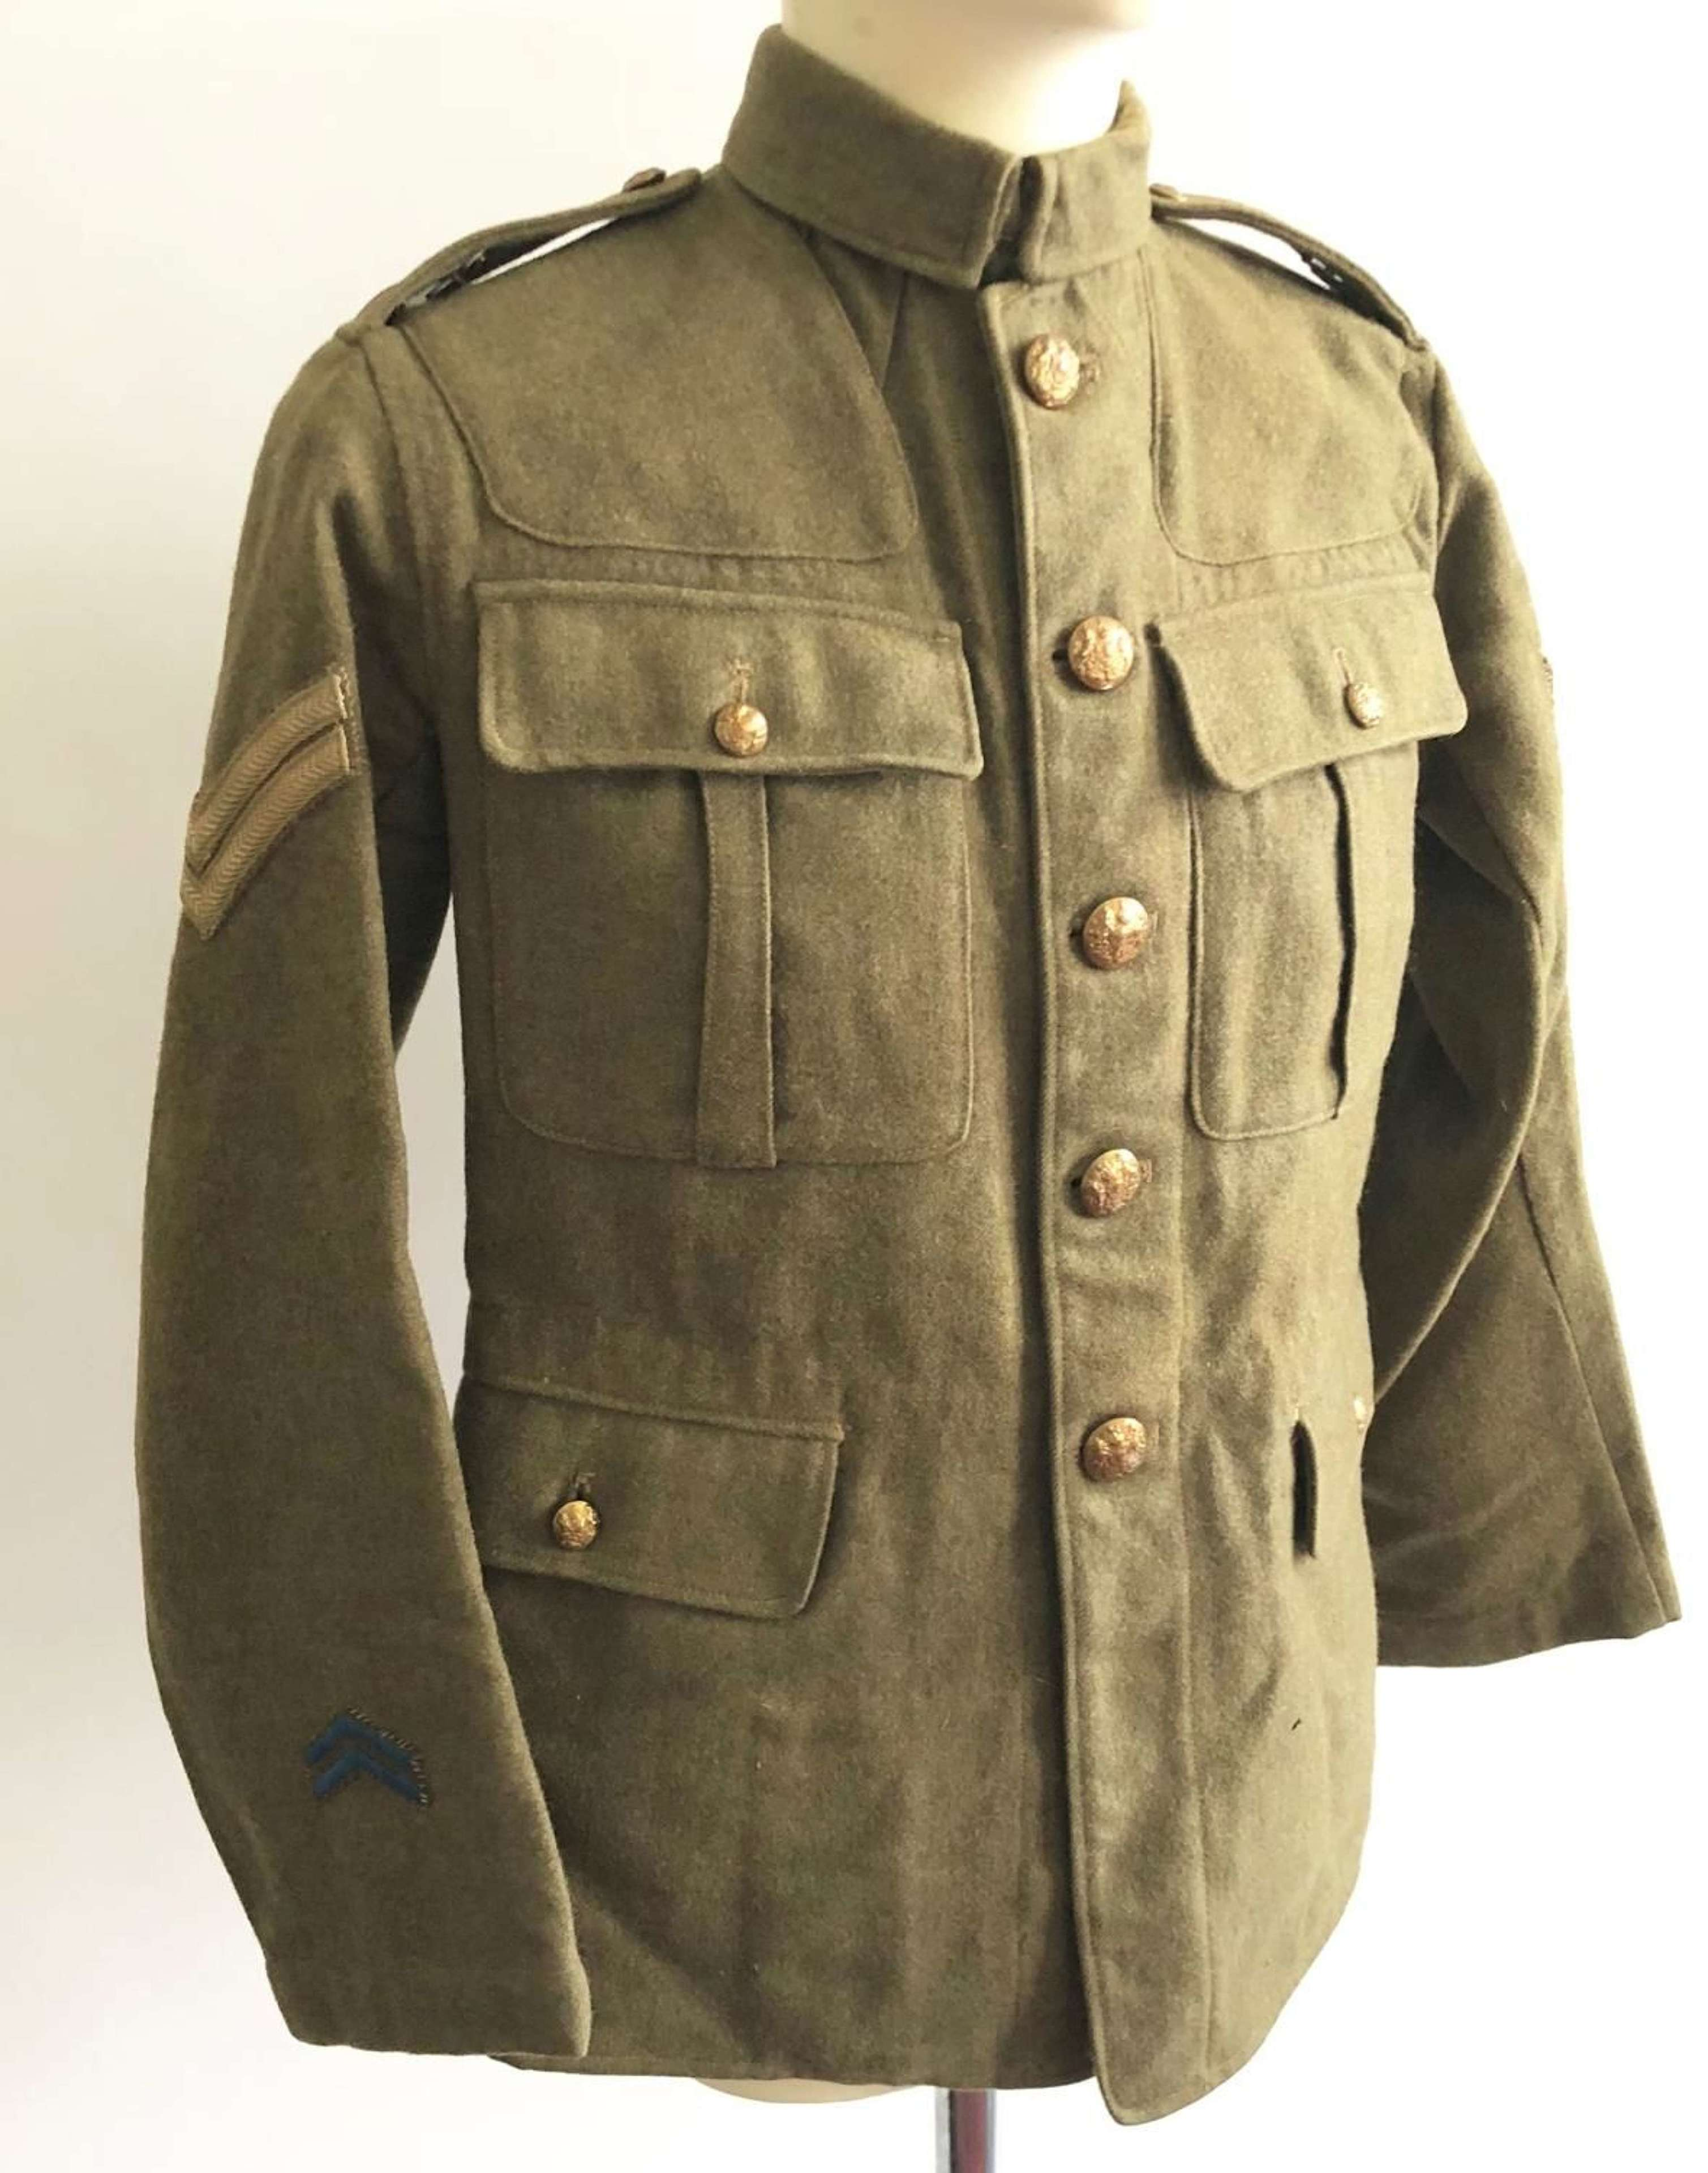 WW1 West Riding Territorial Army Service Corps Attributed Trench Tunic